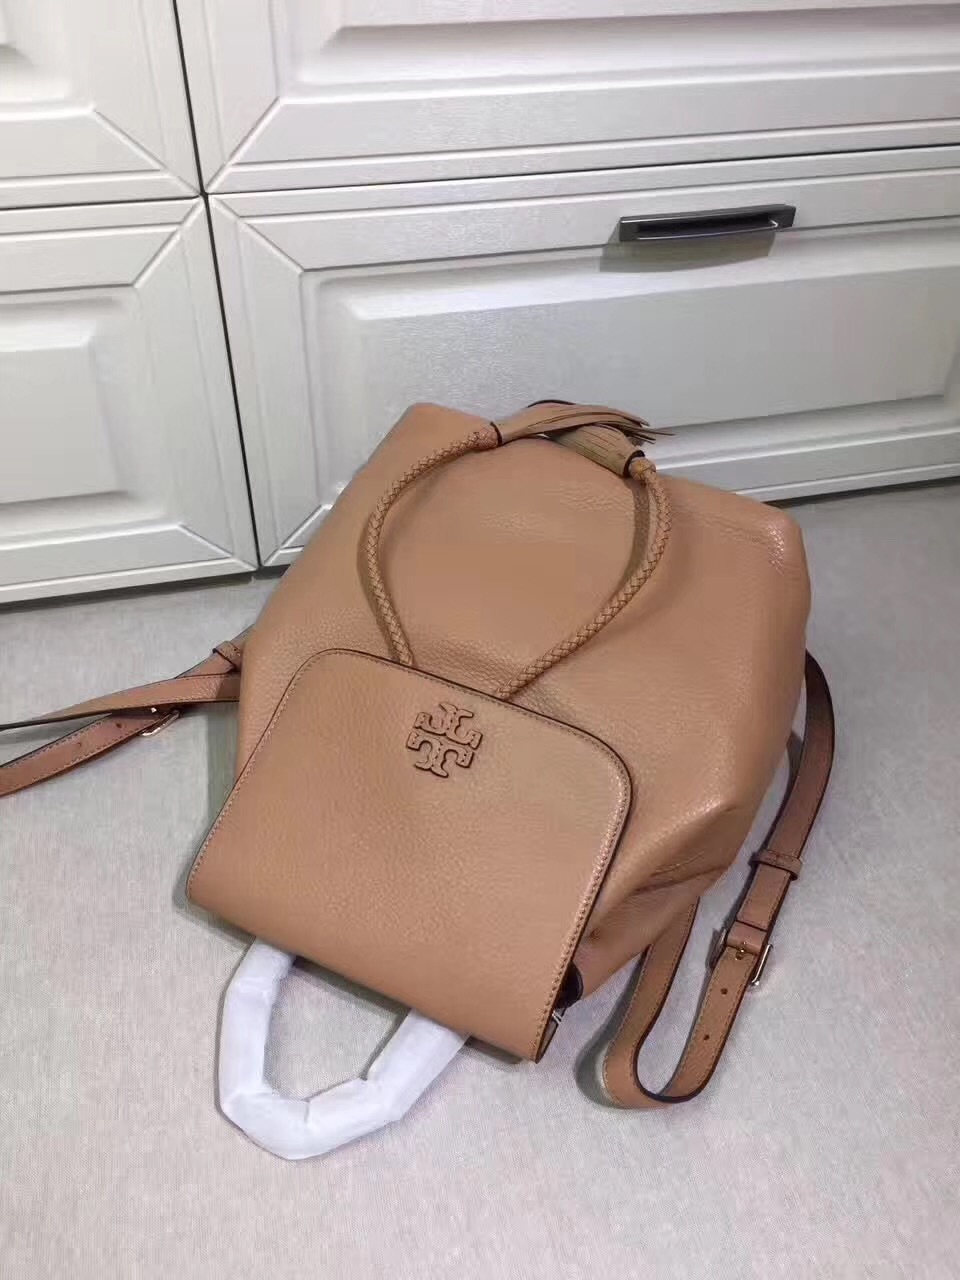 Tory Burch Taylor Backpack image 5